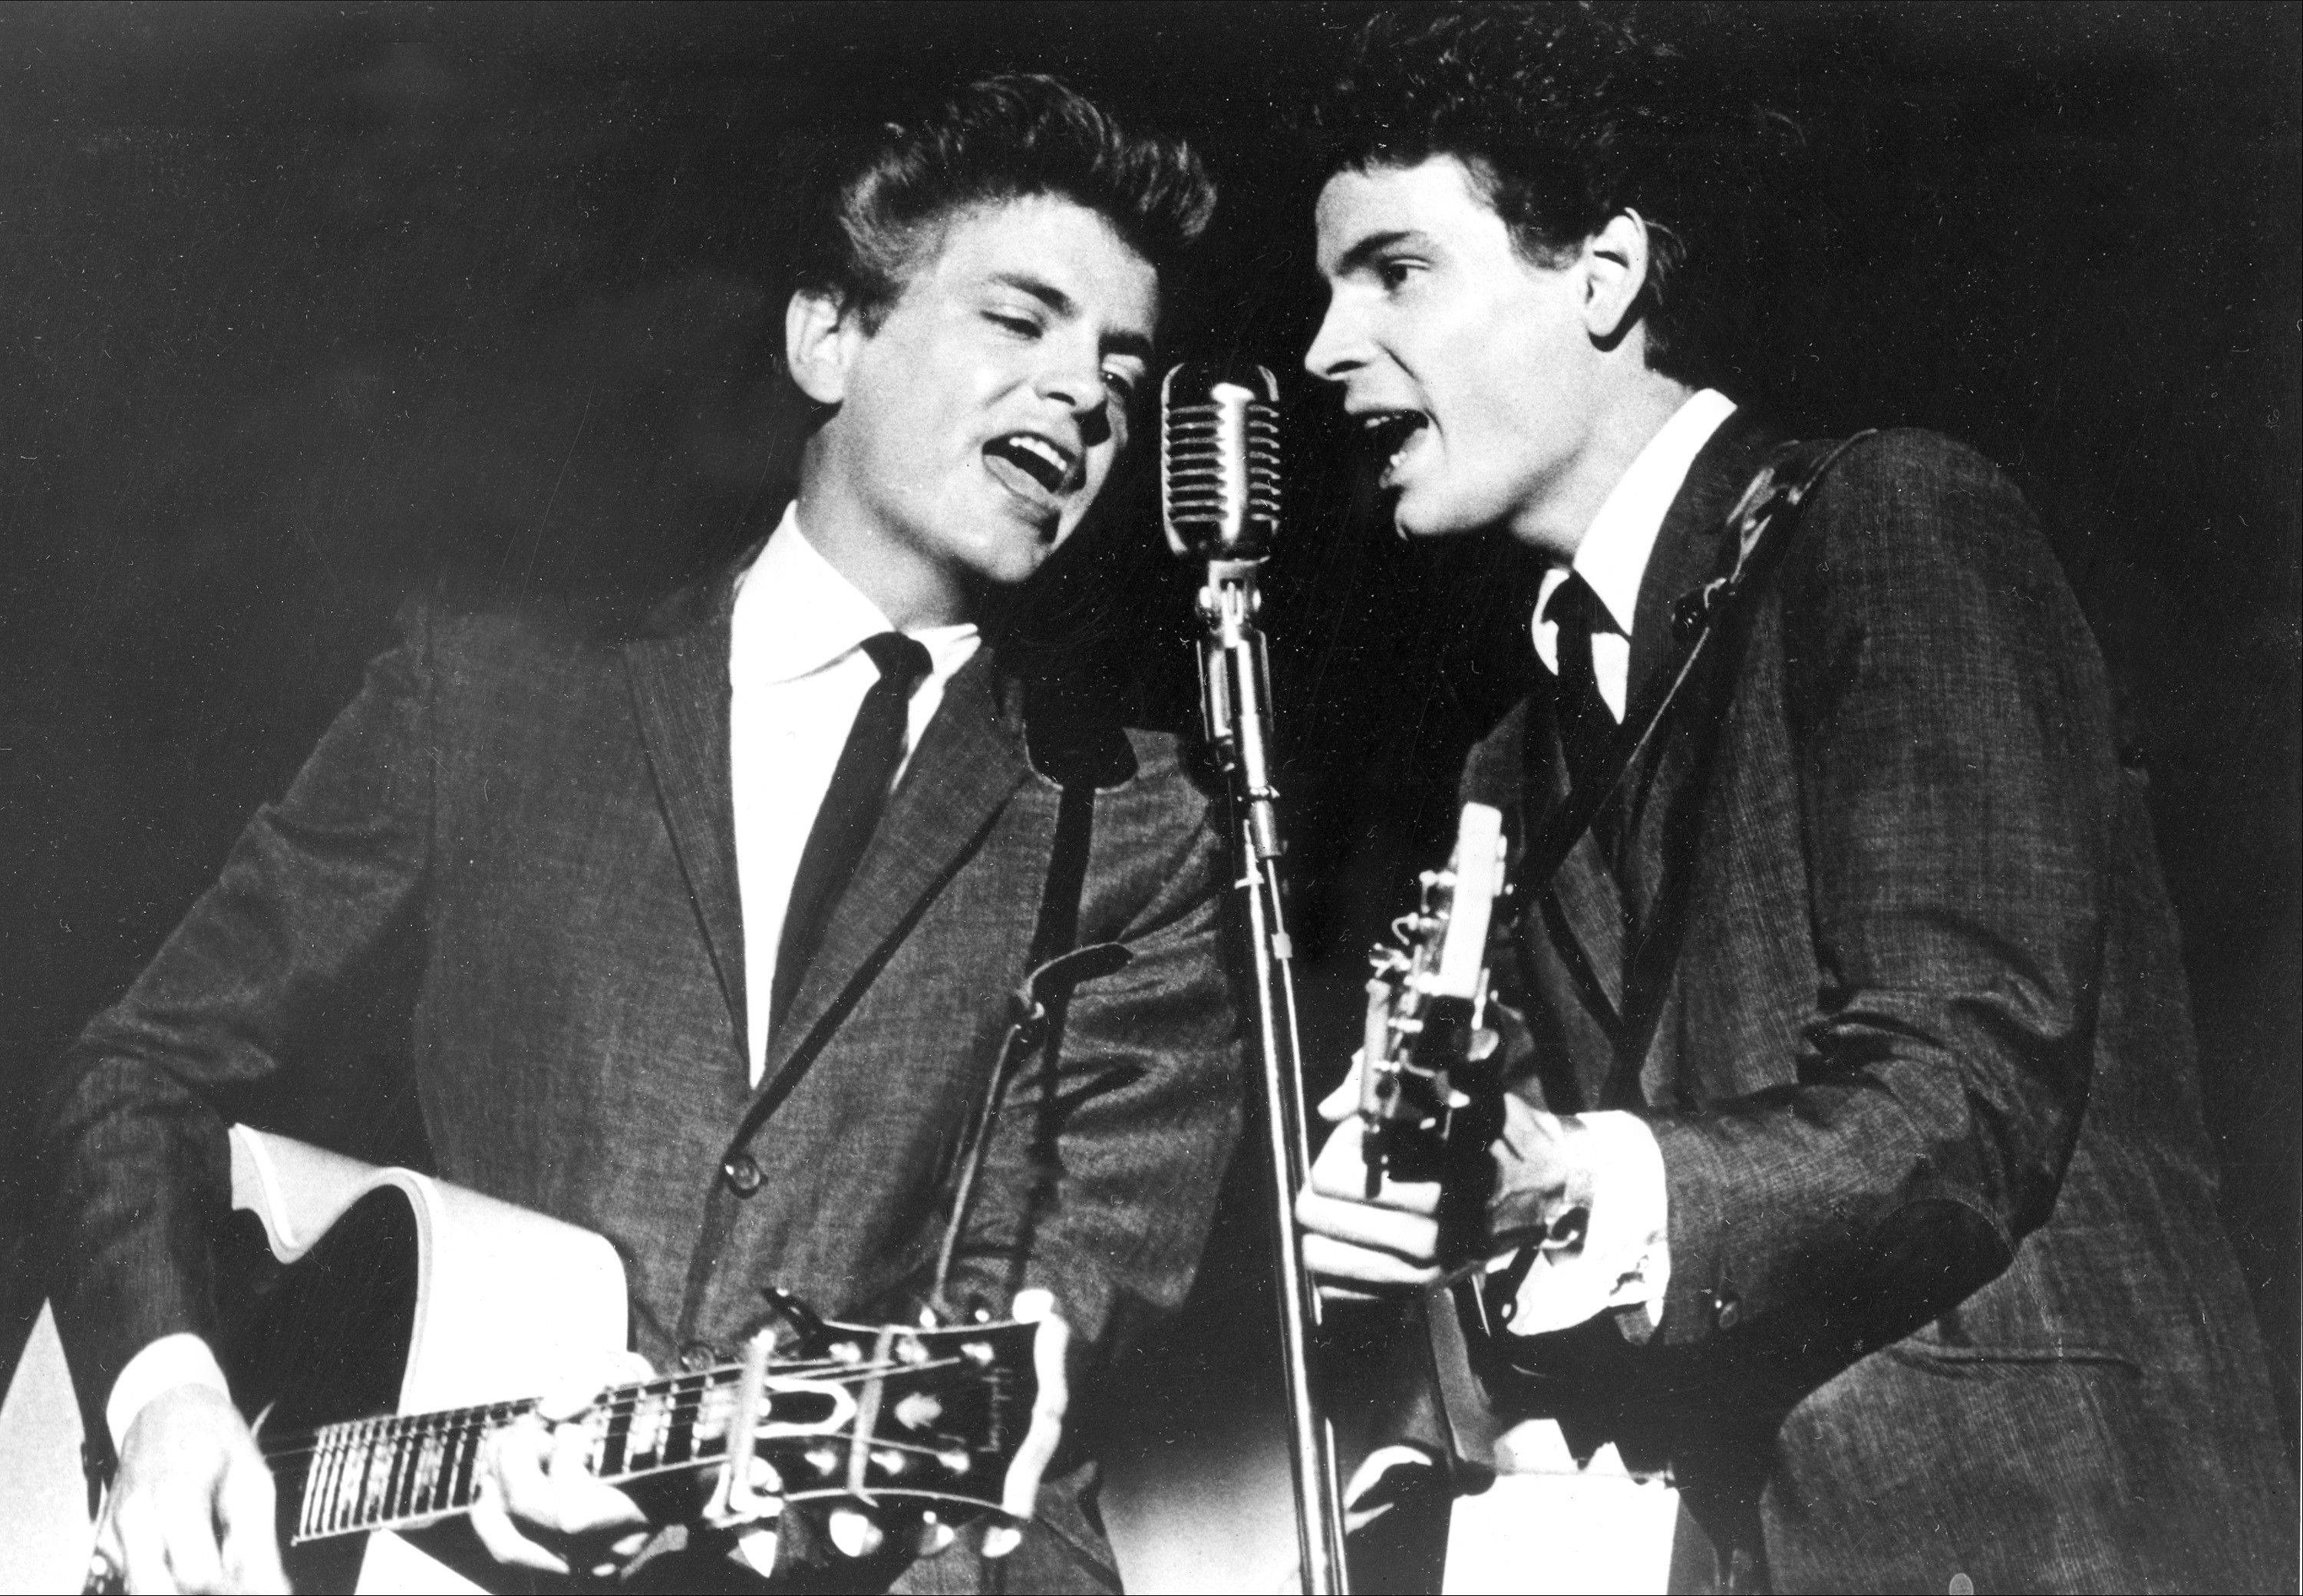 The Everly Brothers, Don and Phil, performing on stage in 1964. Phil Everly, who with his brother Don formed an influential harmony duo that touched the hearts and sparked the imaginations of rock 'n' roll singers for decades, died Friday.